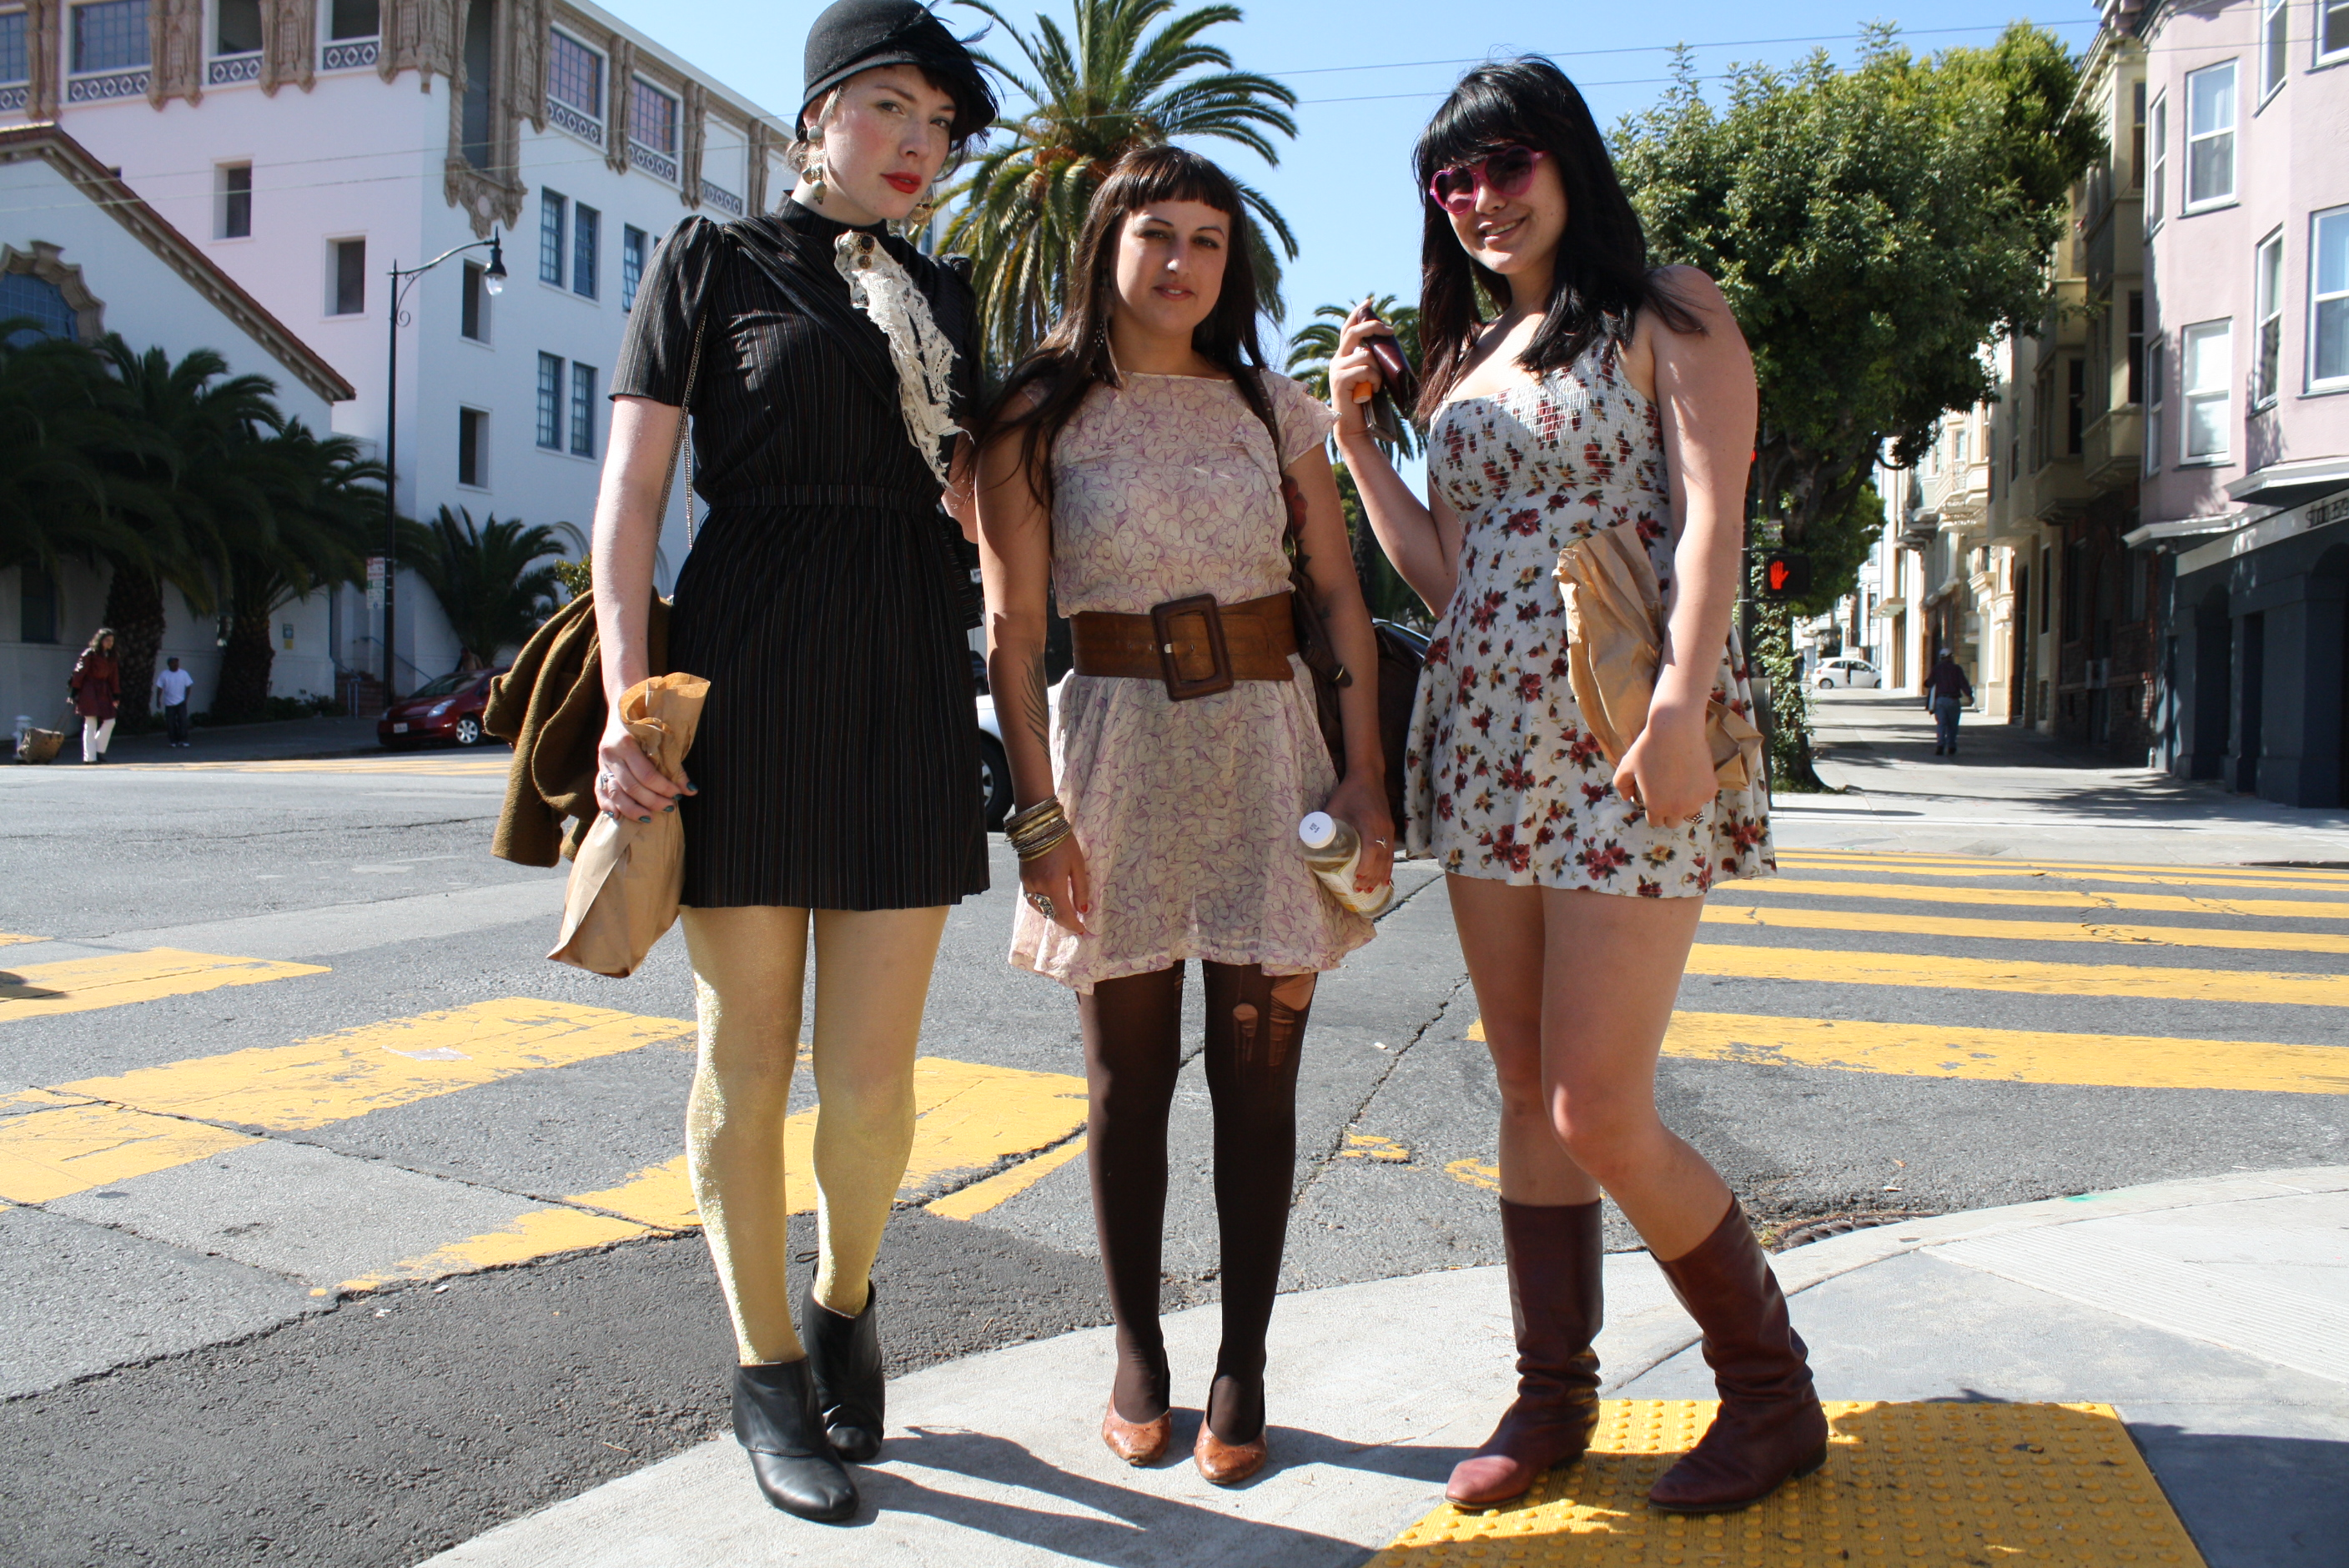 Dress Code: Ripped Tights and Flappers